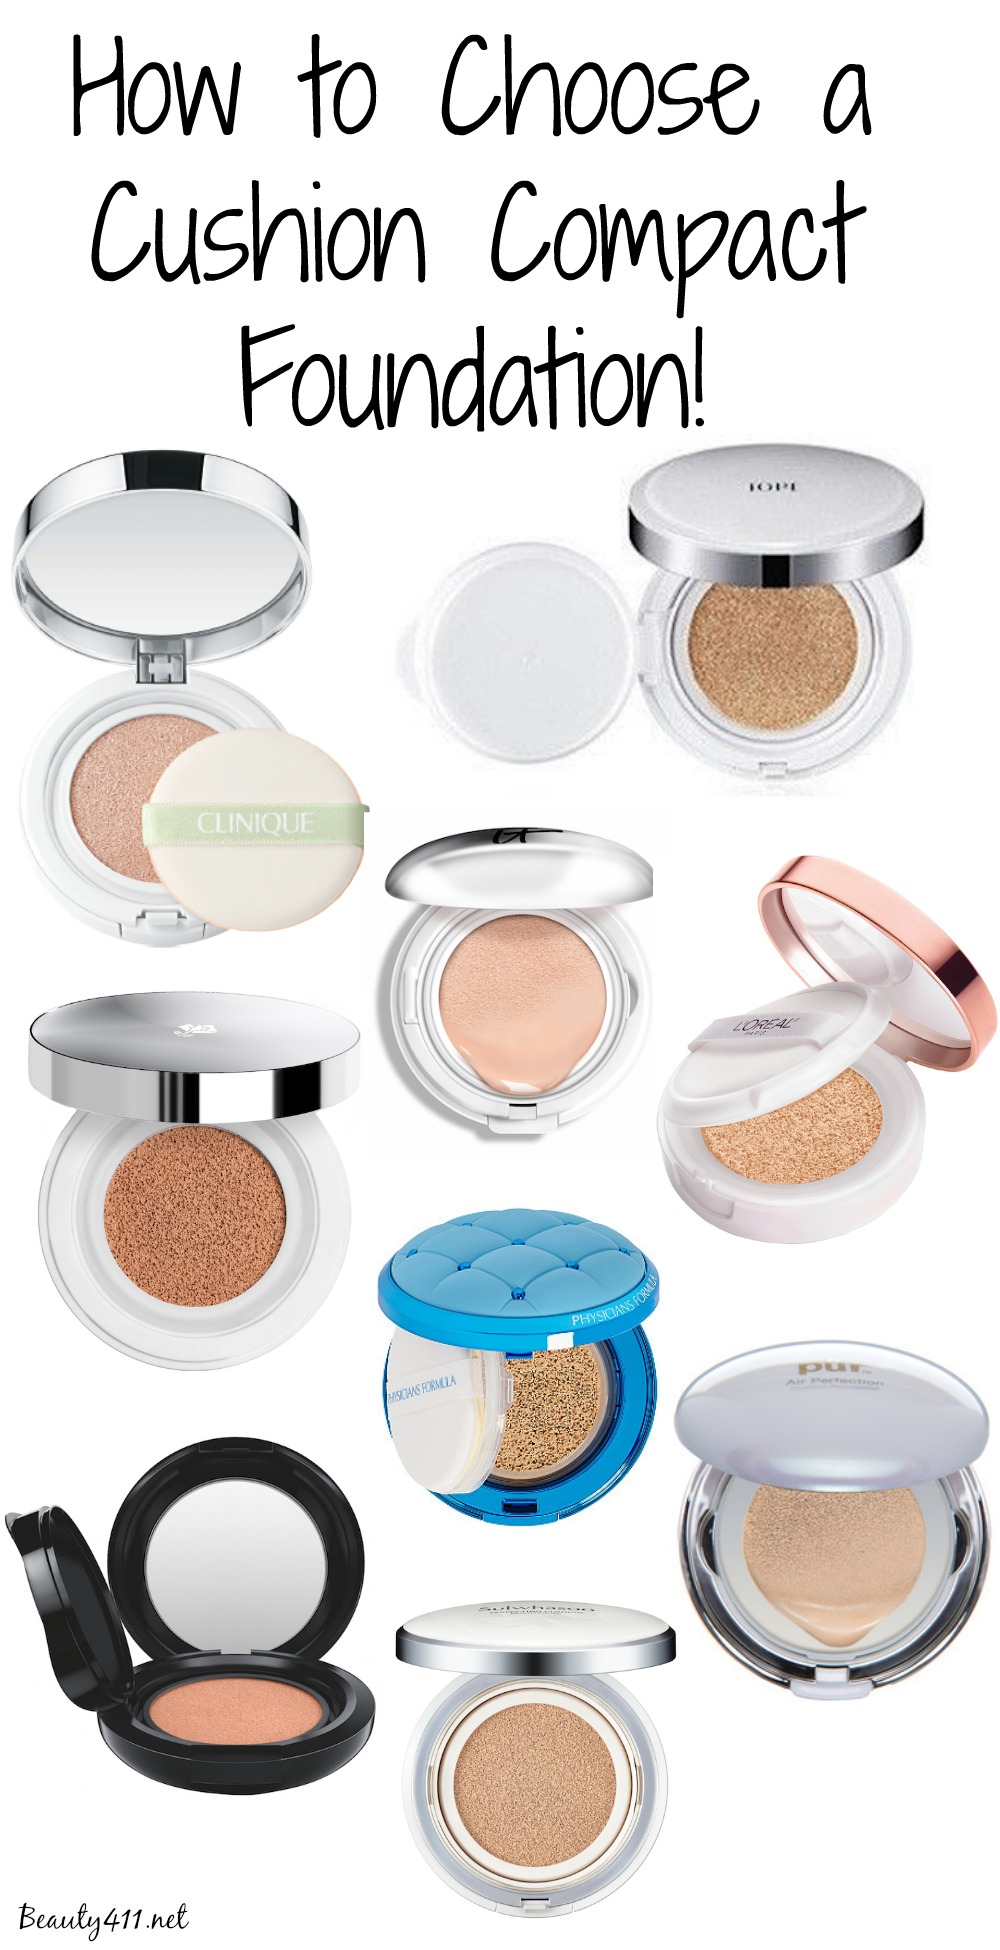 How to choose a cushion compact foundation guide to choosing a cushion compact foundation nvjuhfo Images